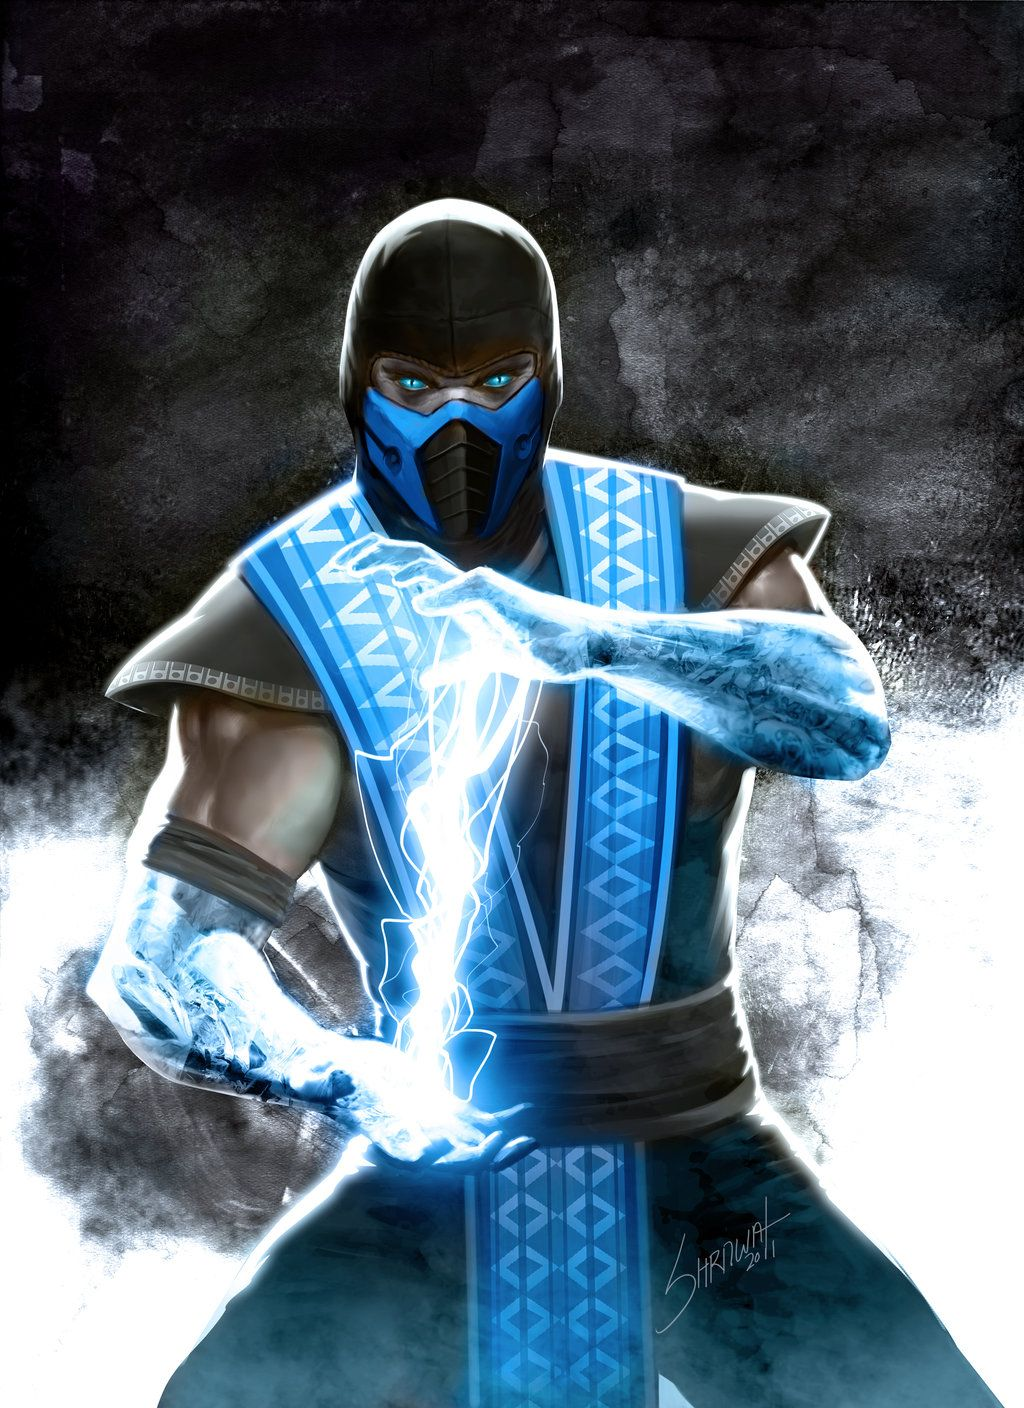 Mortal Kombat Sub-Zero by SHERAWAT deviantart com on